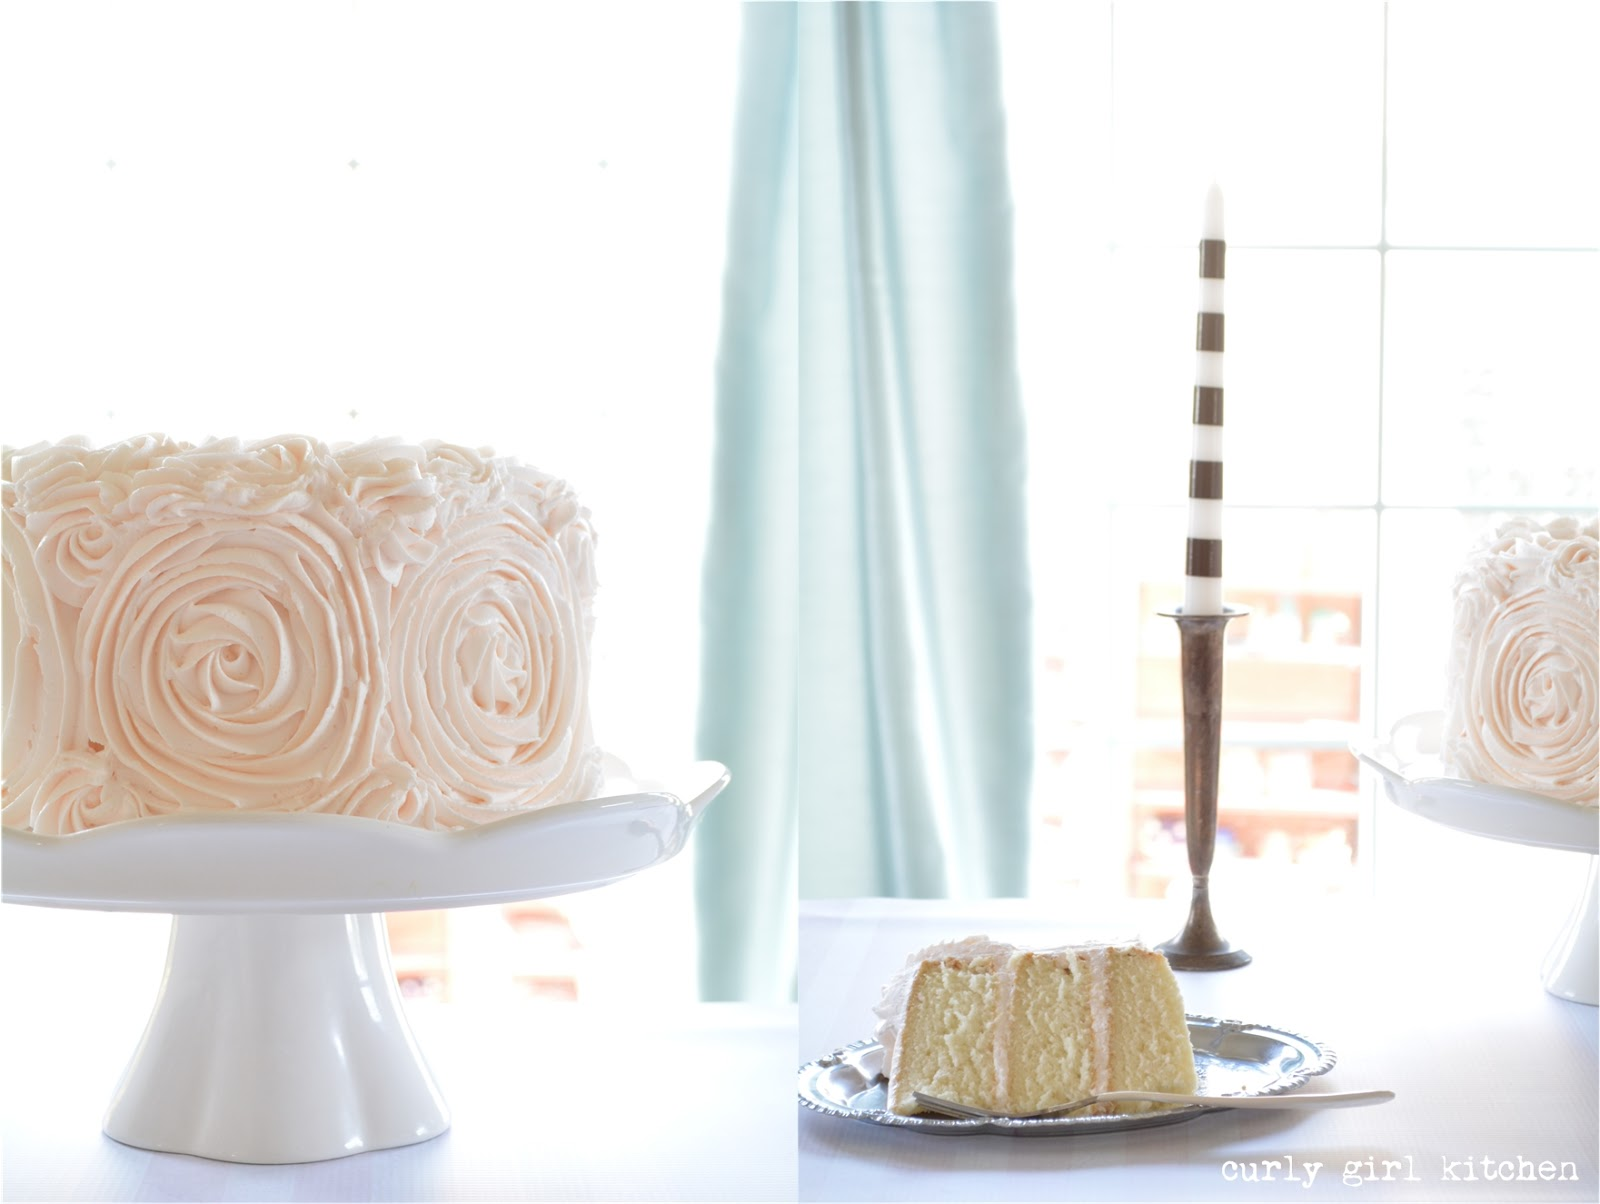 Curly Girl Kitchen: White Cake